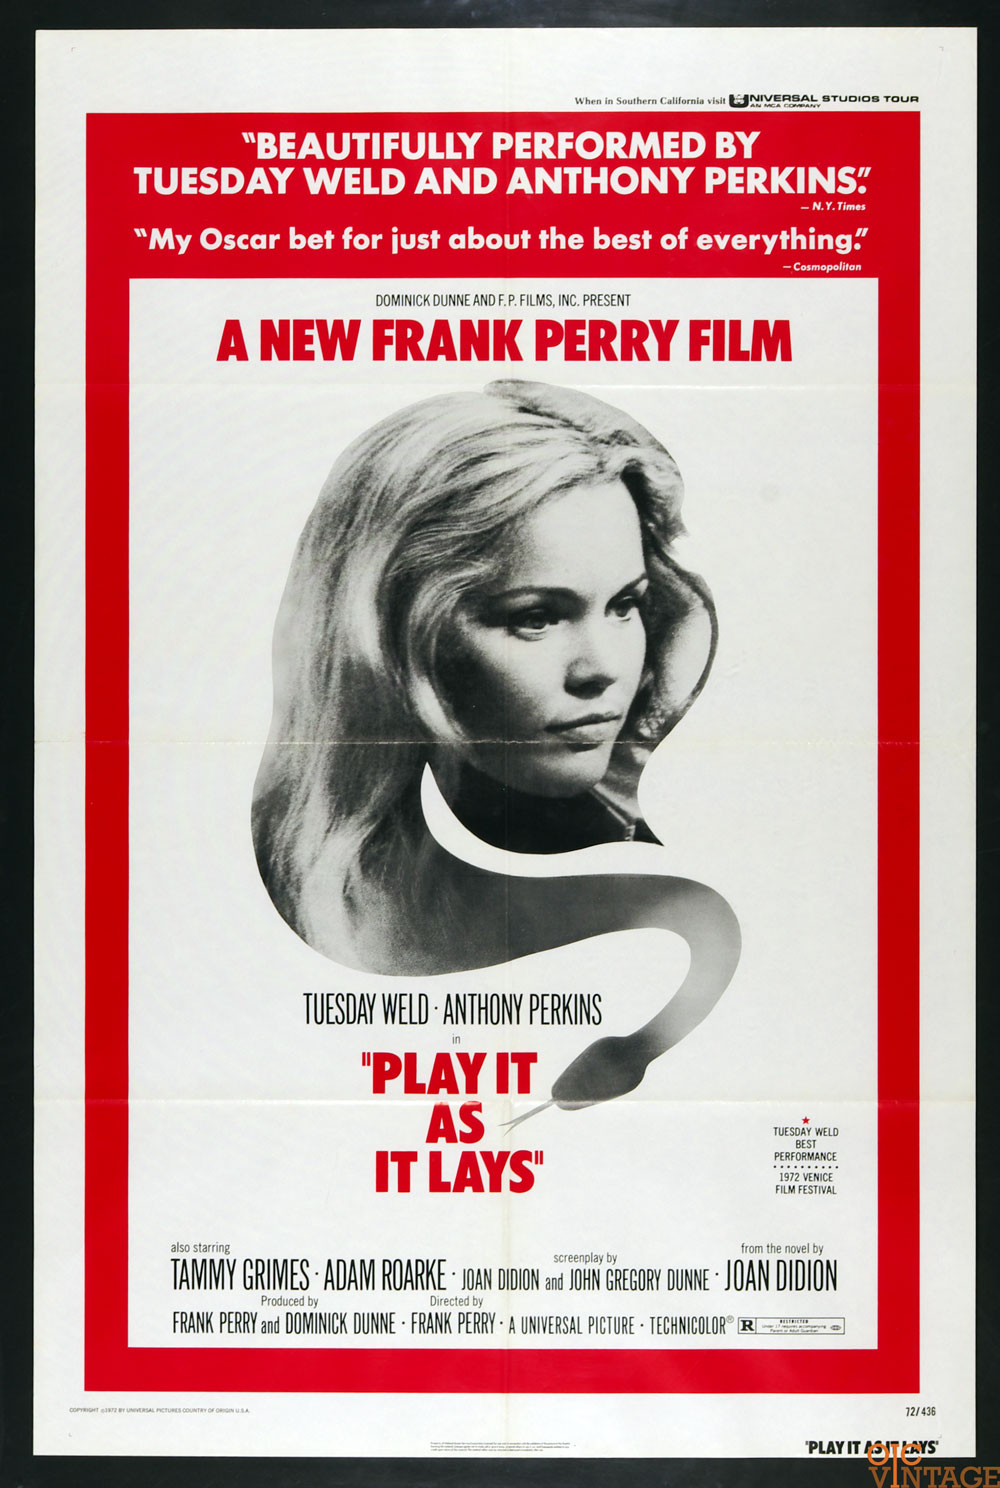 Play It as It Lays Movie Poster 1972 Tuesday Weld Anthony Perkins 27 x 41 1 sheet